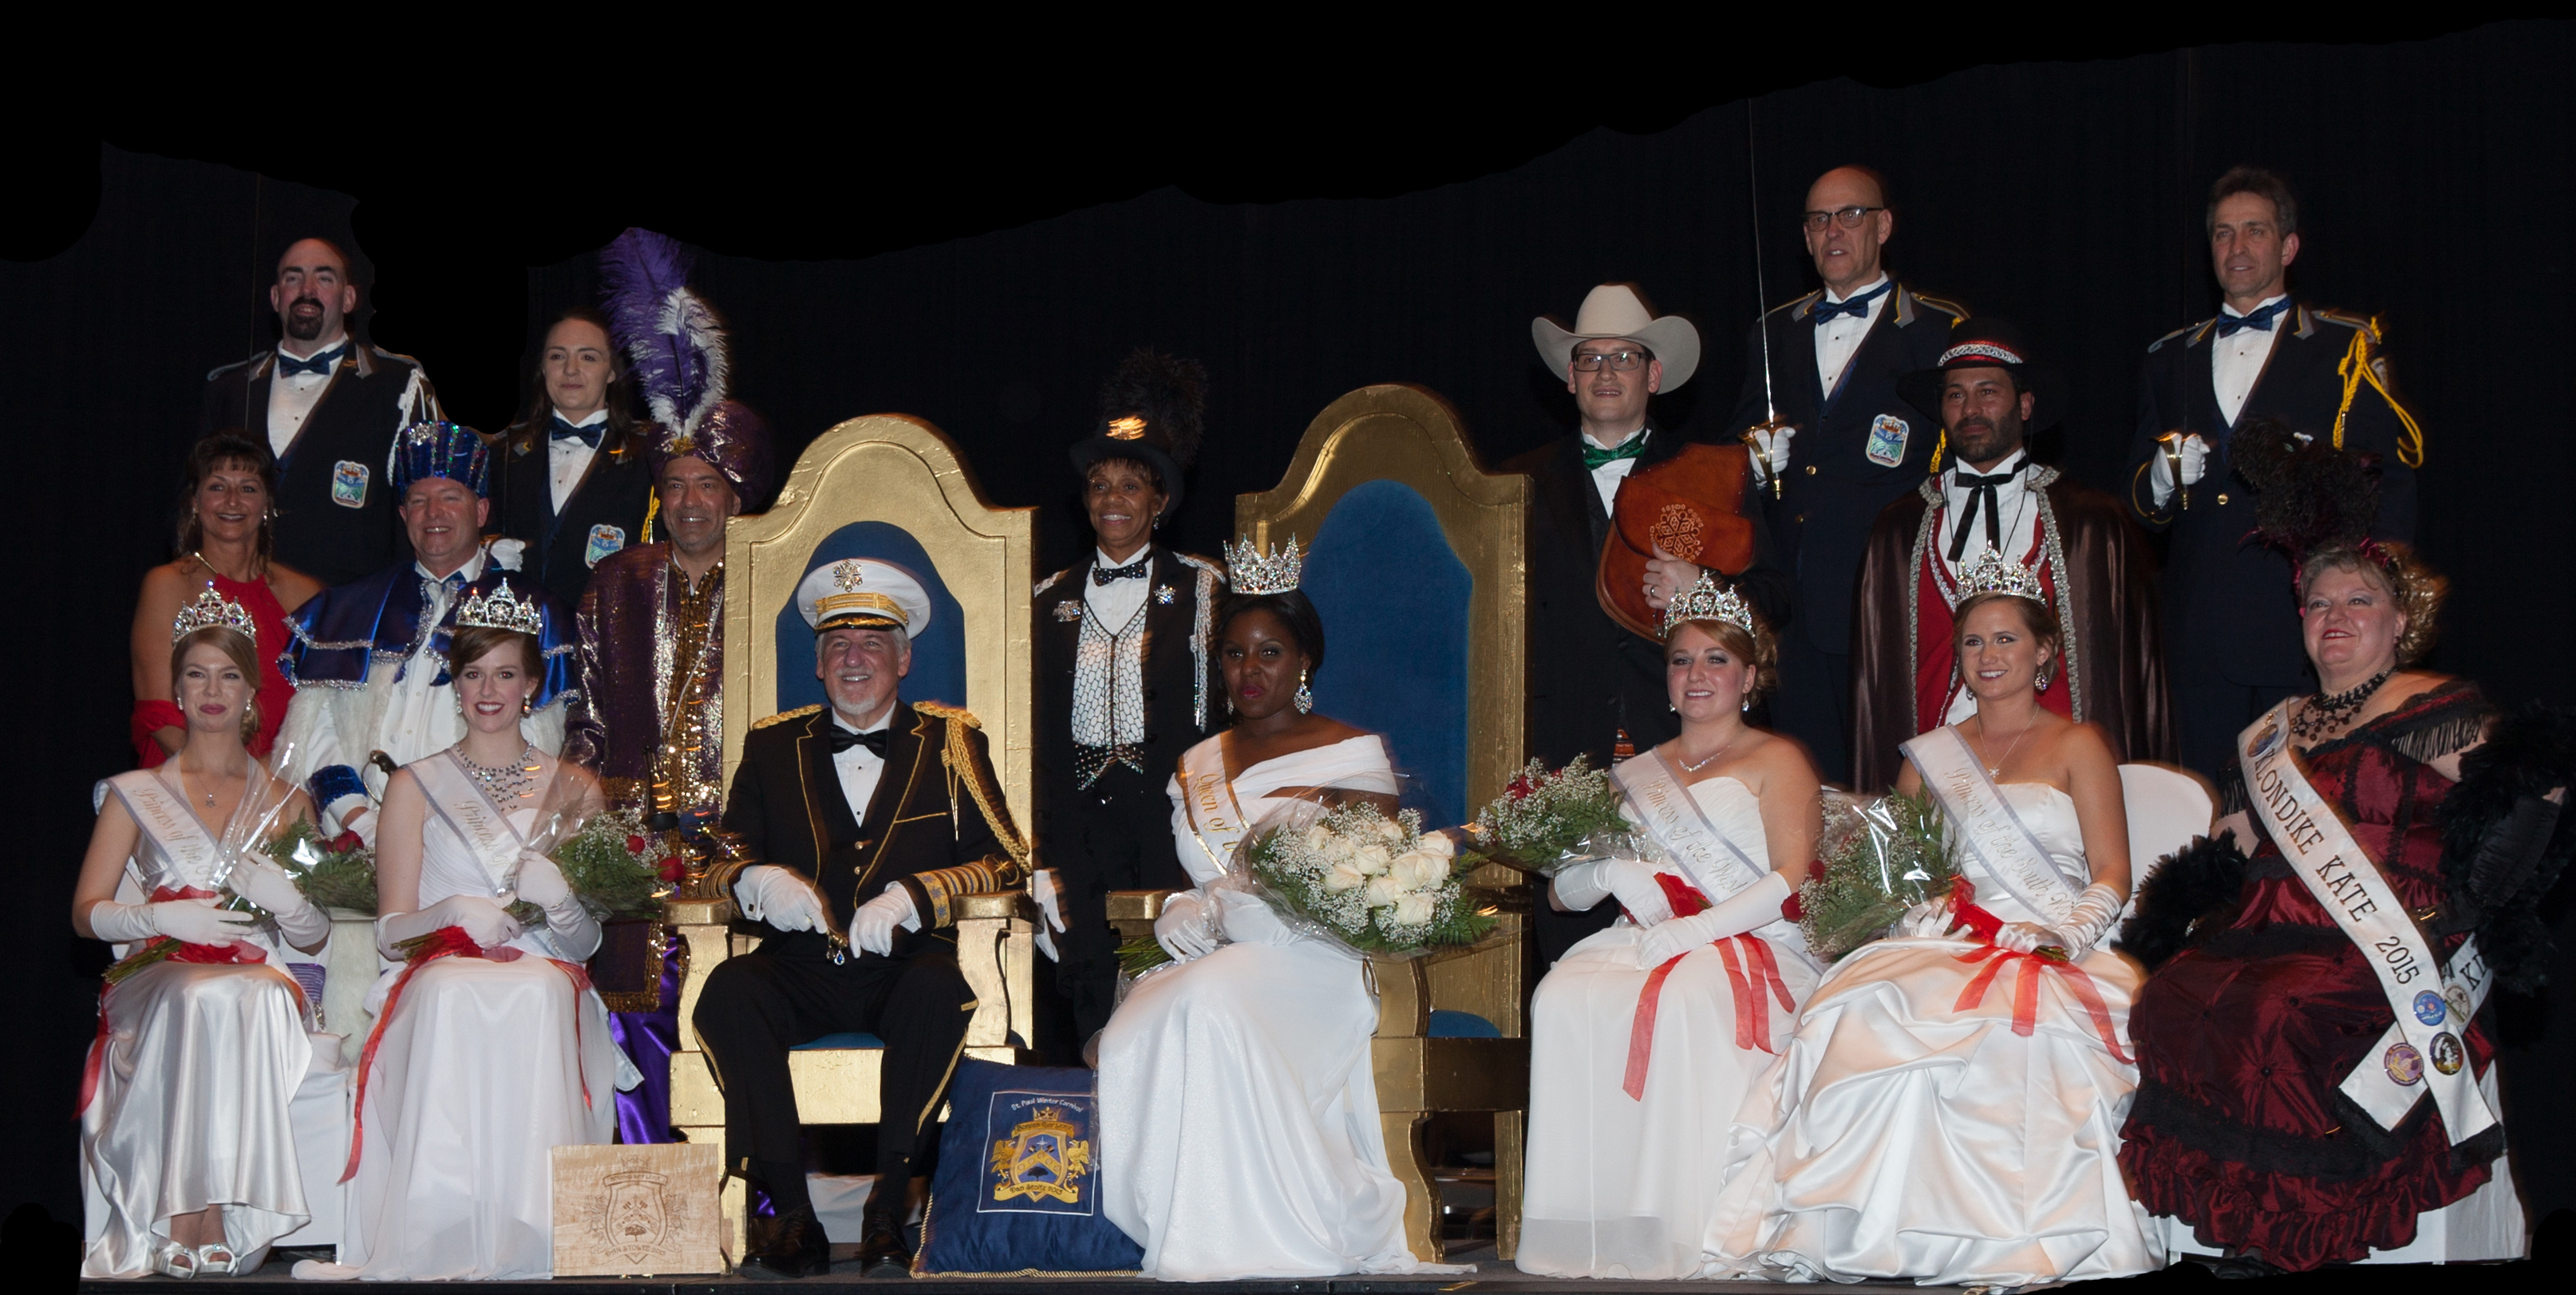 All of the 2015 Royalty